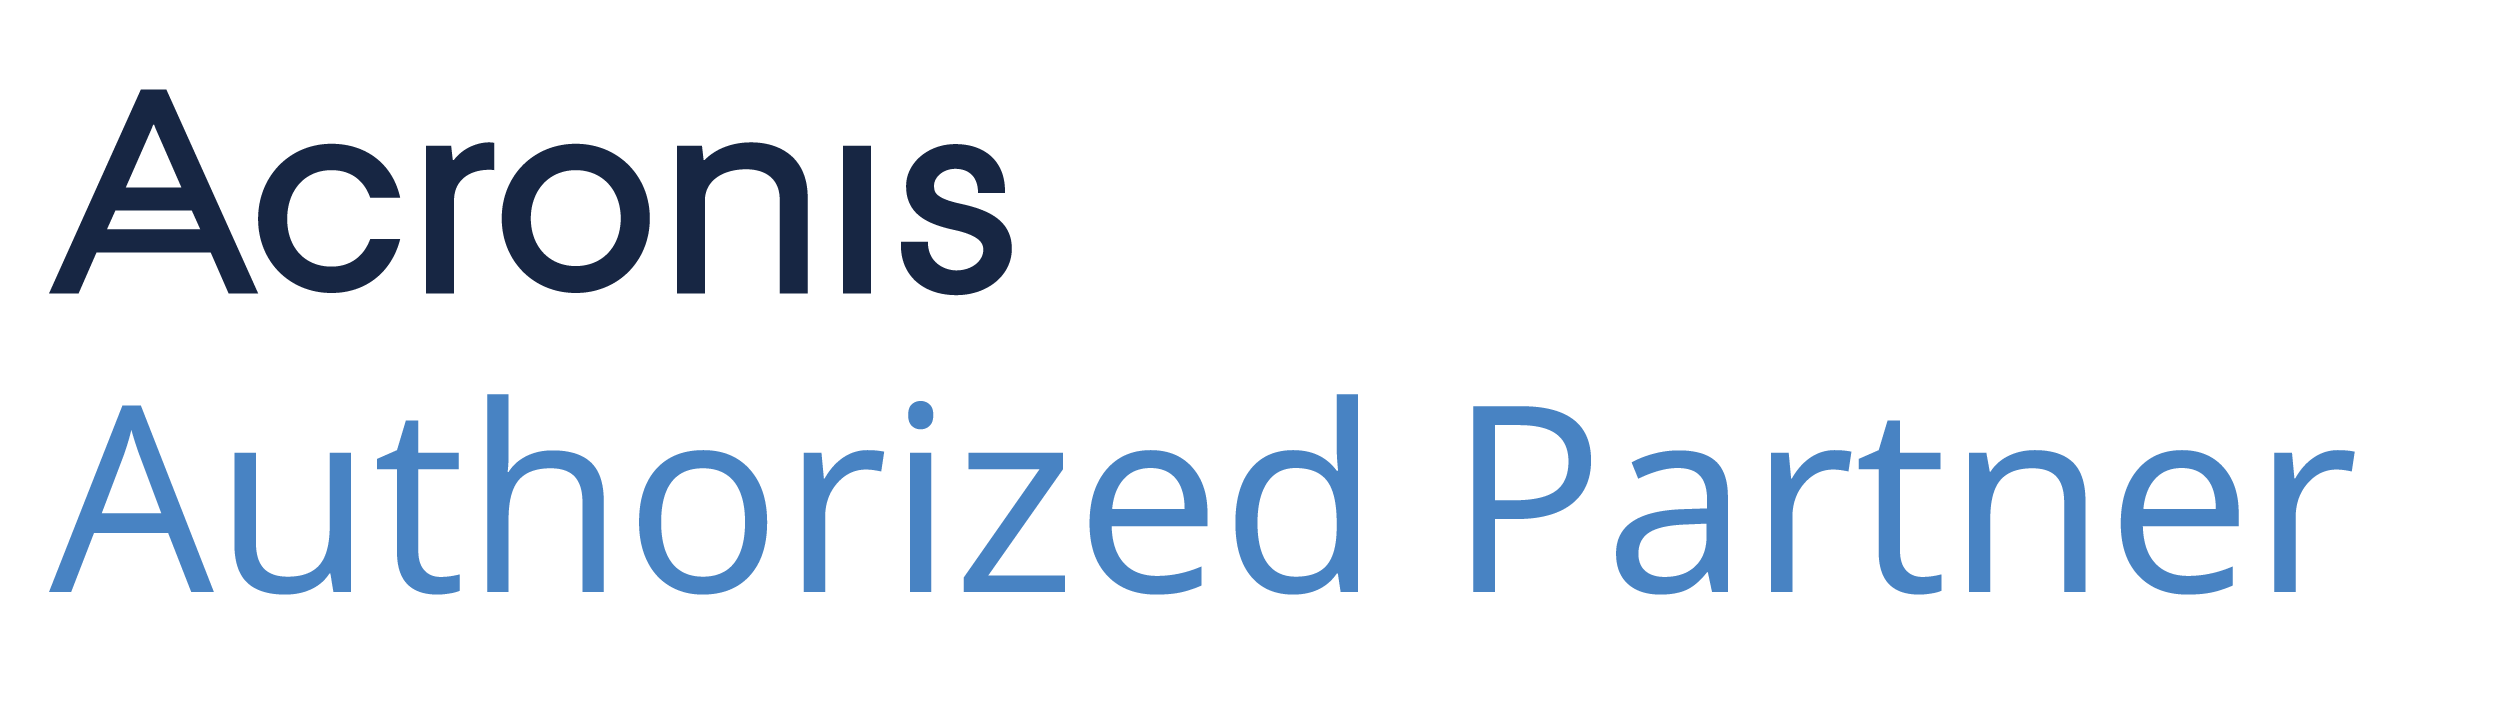 Acronis_Authorized_Partner